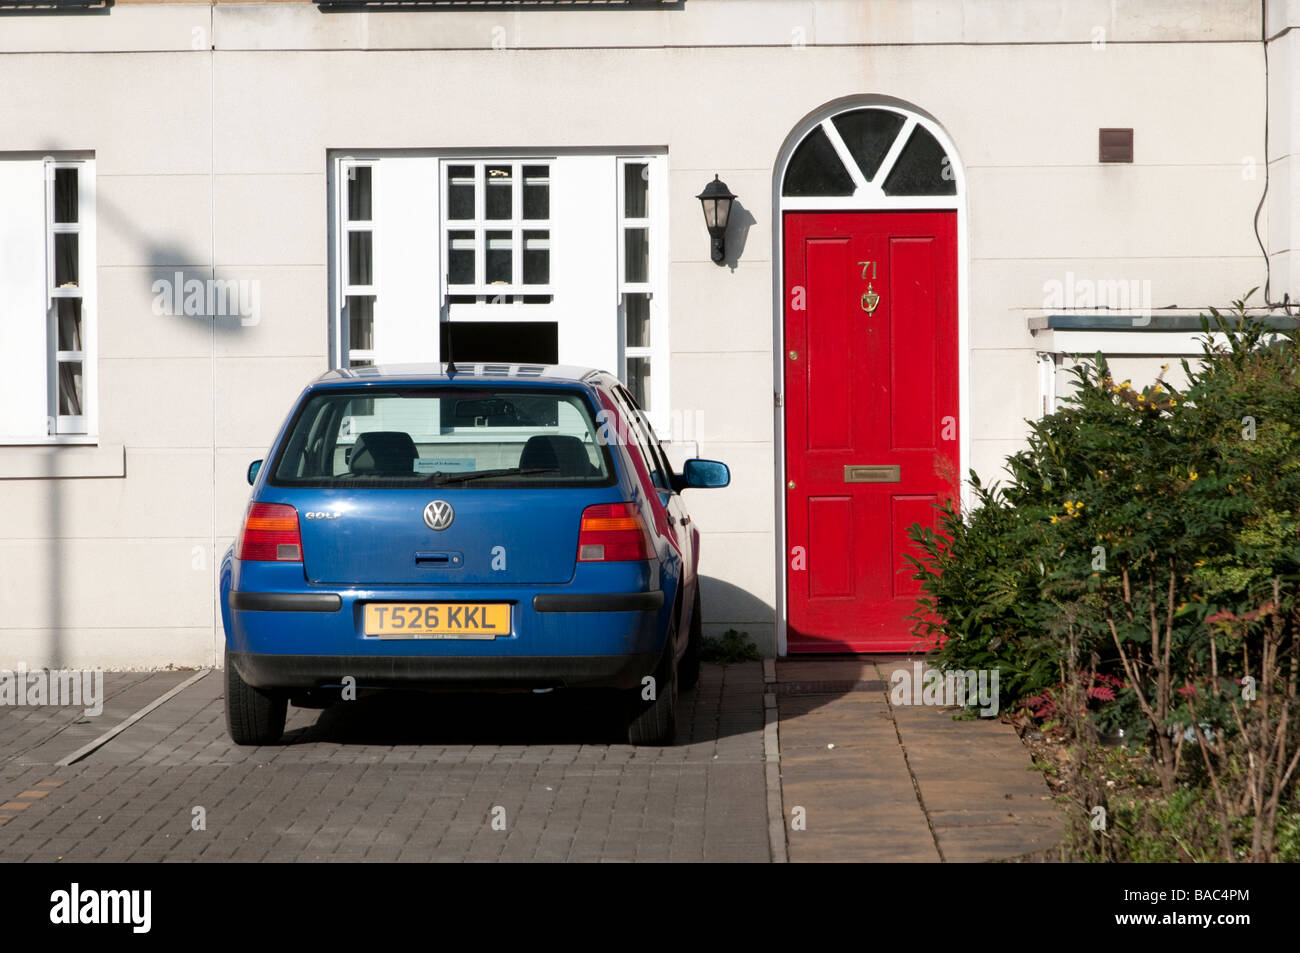 Car parked in the drive, London England UK - Stock Image